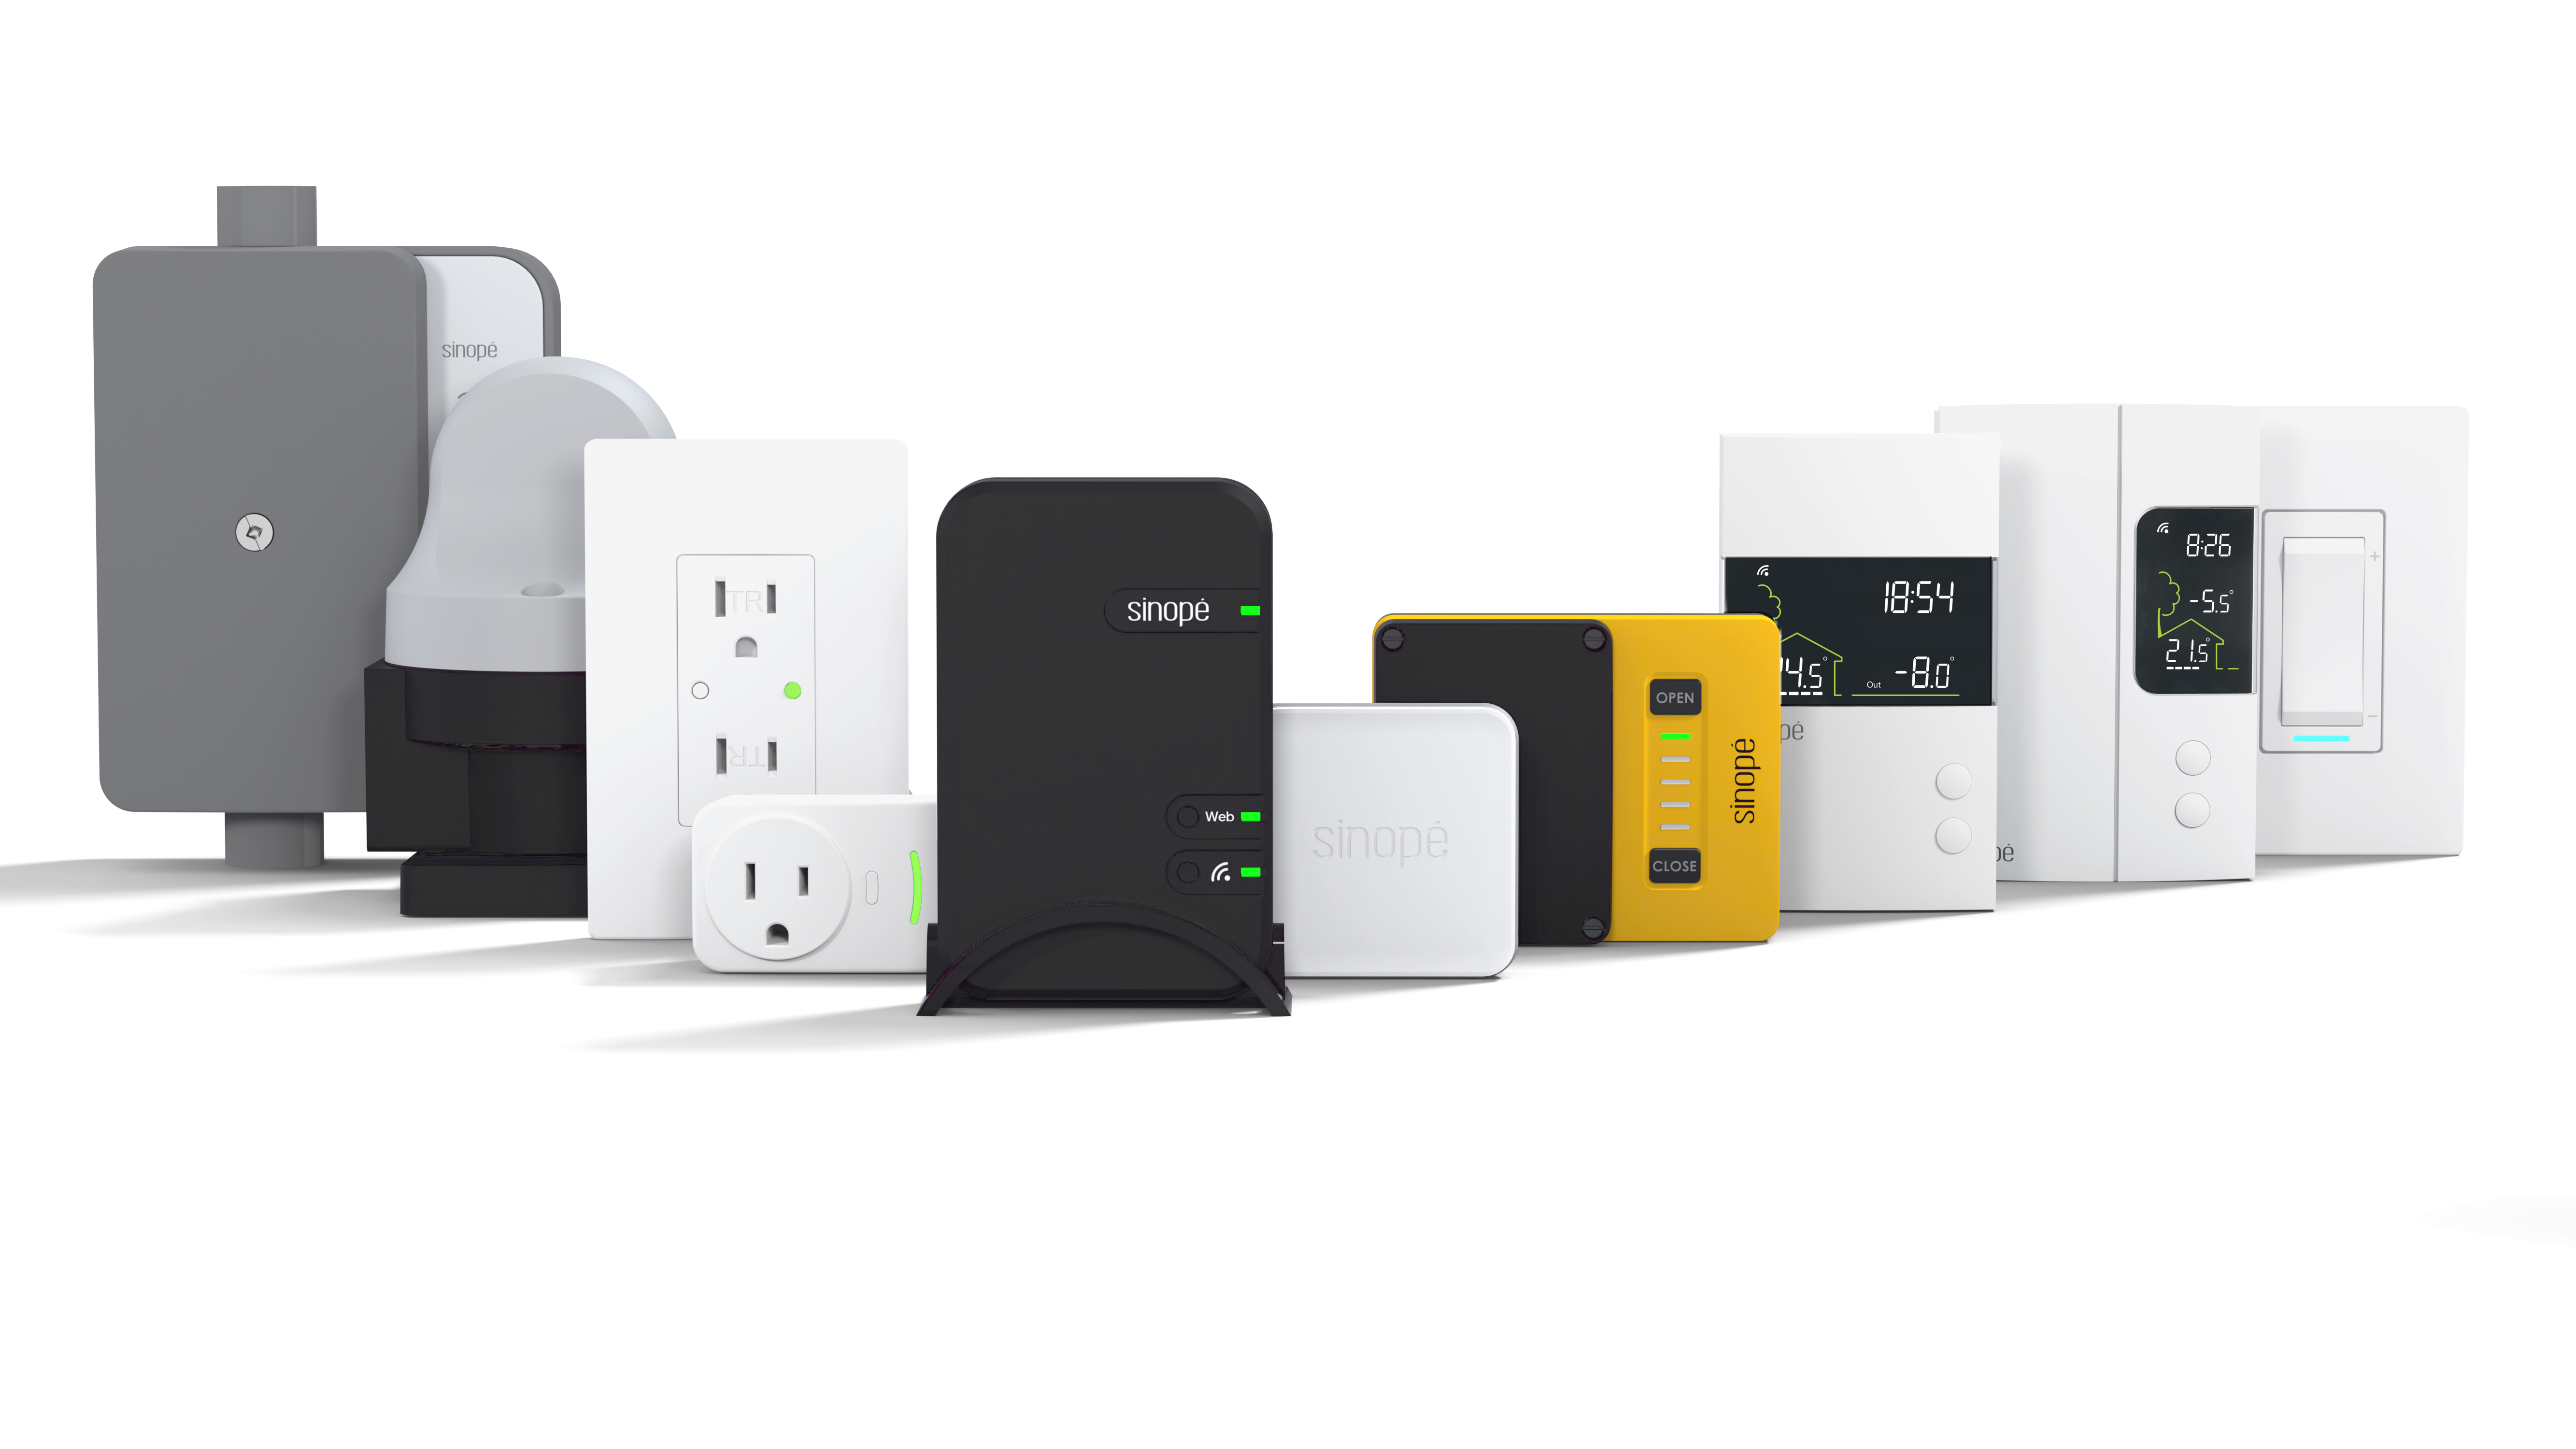 Sinopé Technologies becomes North America's largest smart home devices manufacturer specialized in energy efficiency with its new ecosystem